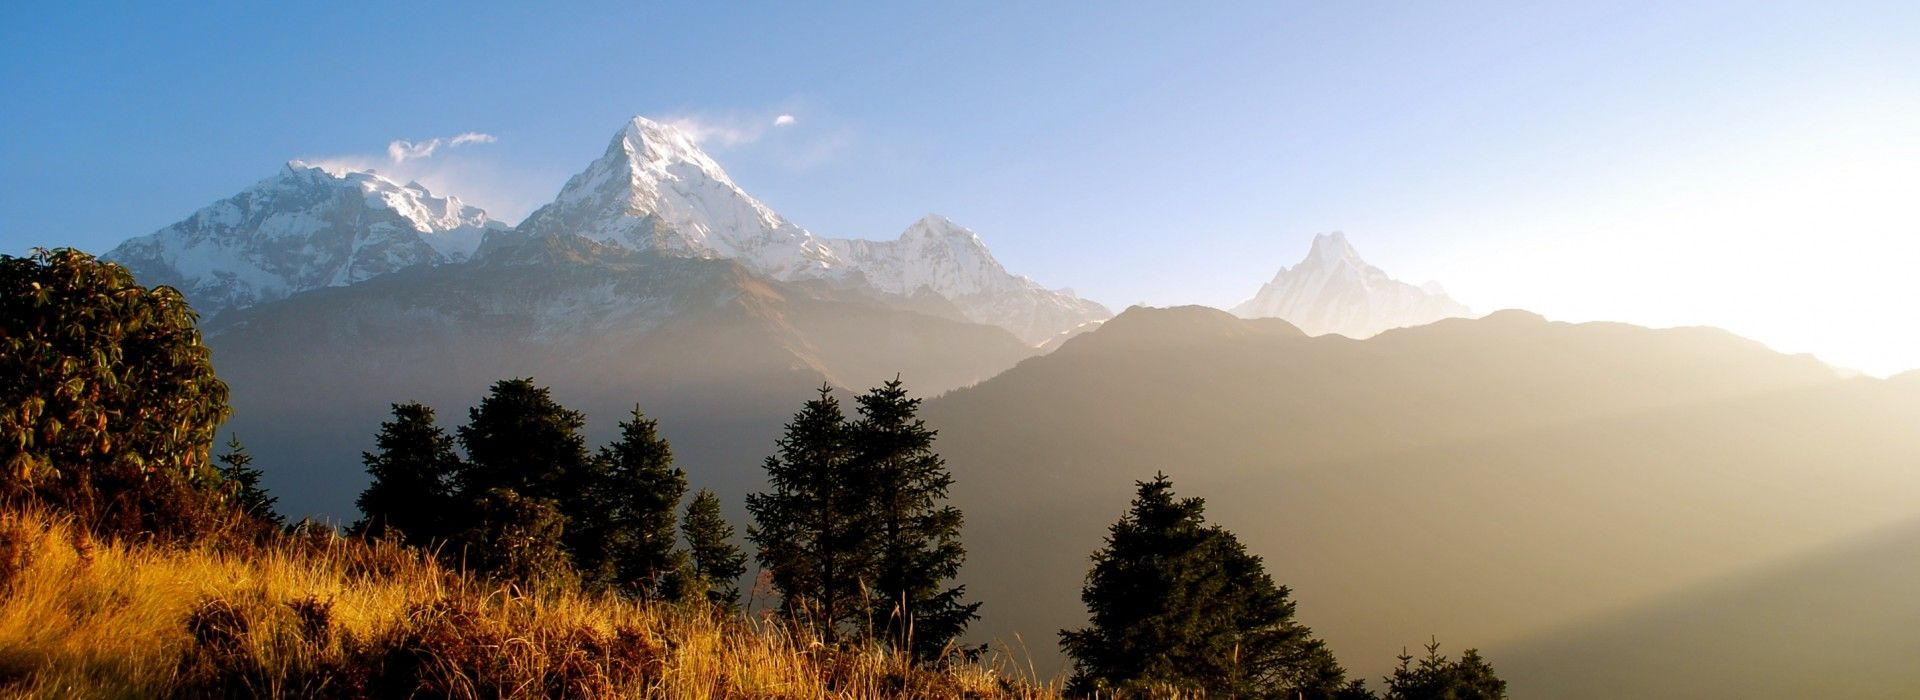 Mountains Tours in Everest Base Camp trek